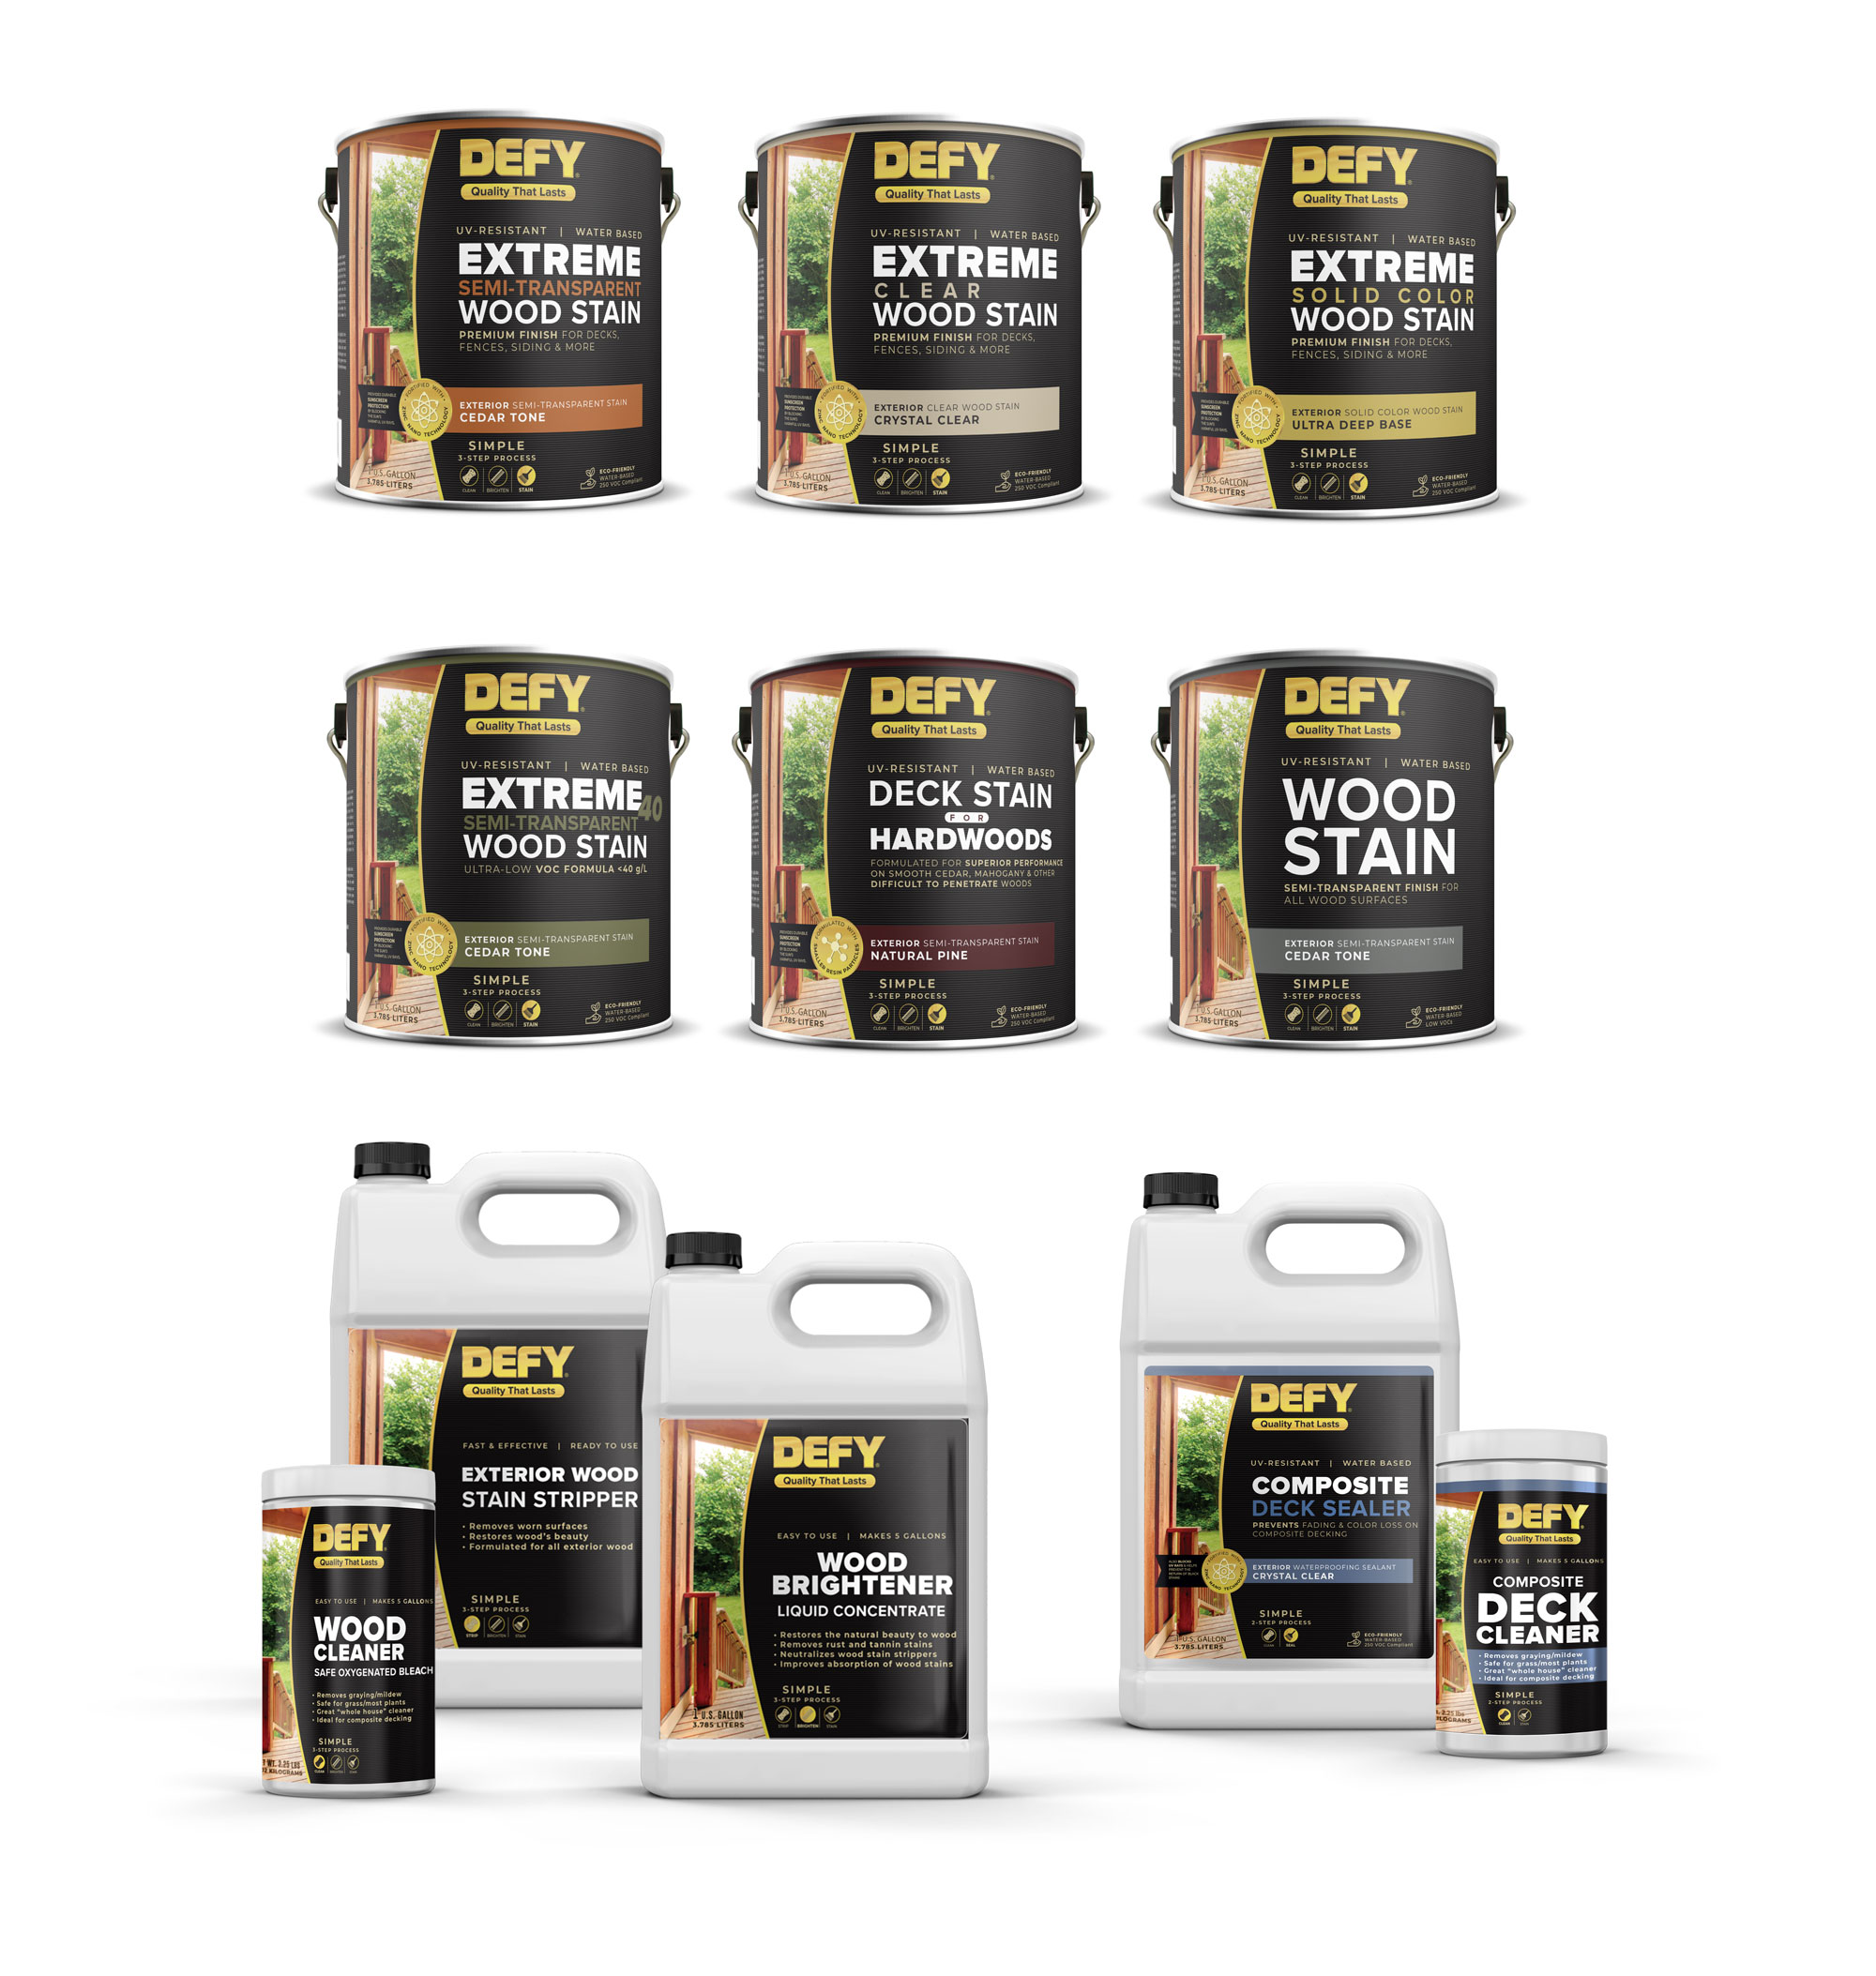 Defy Stain New Product Labels